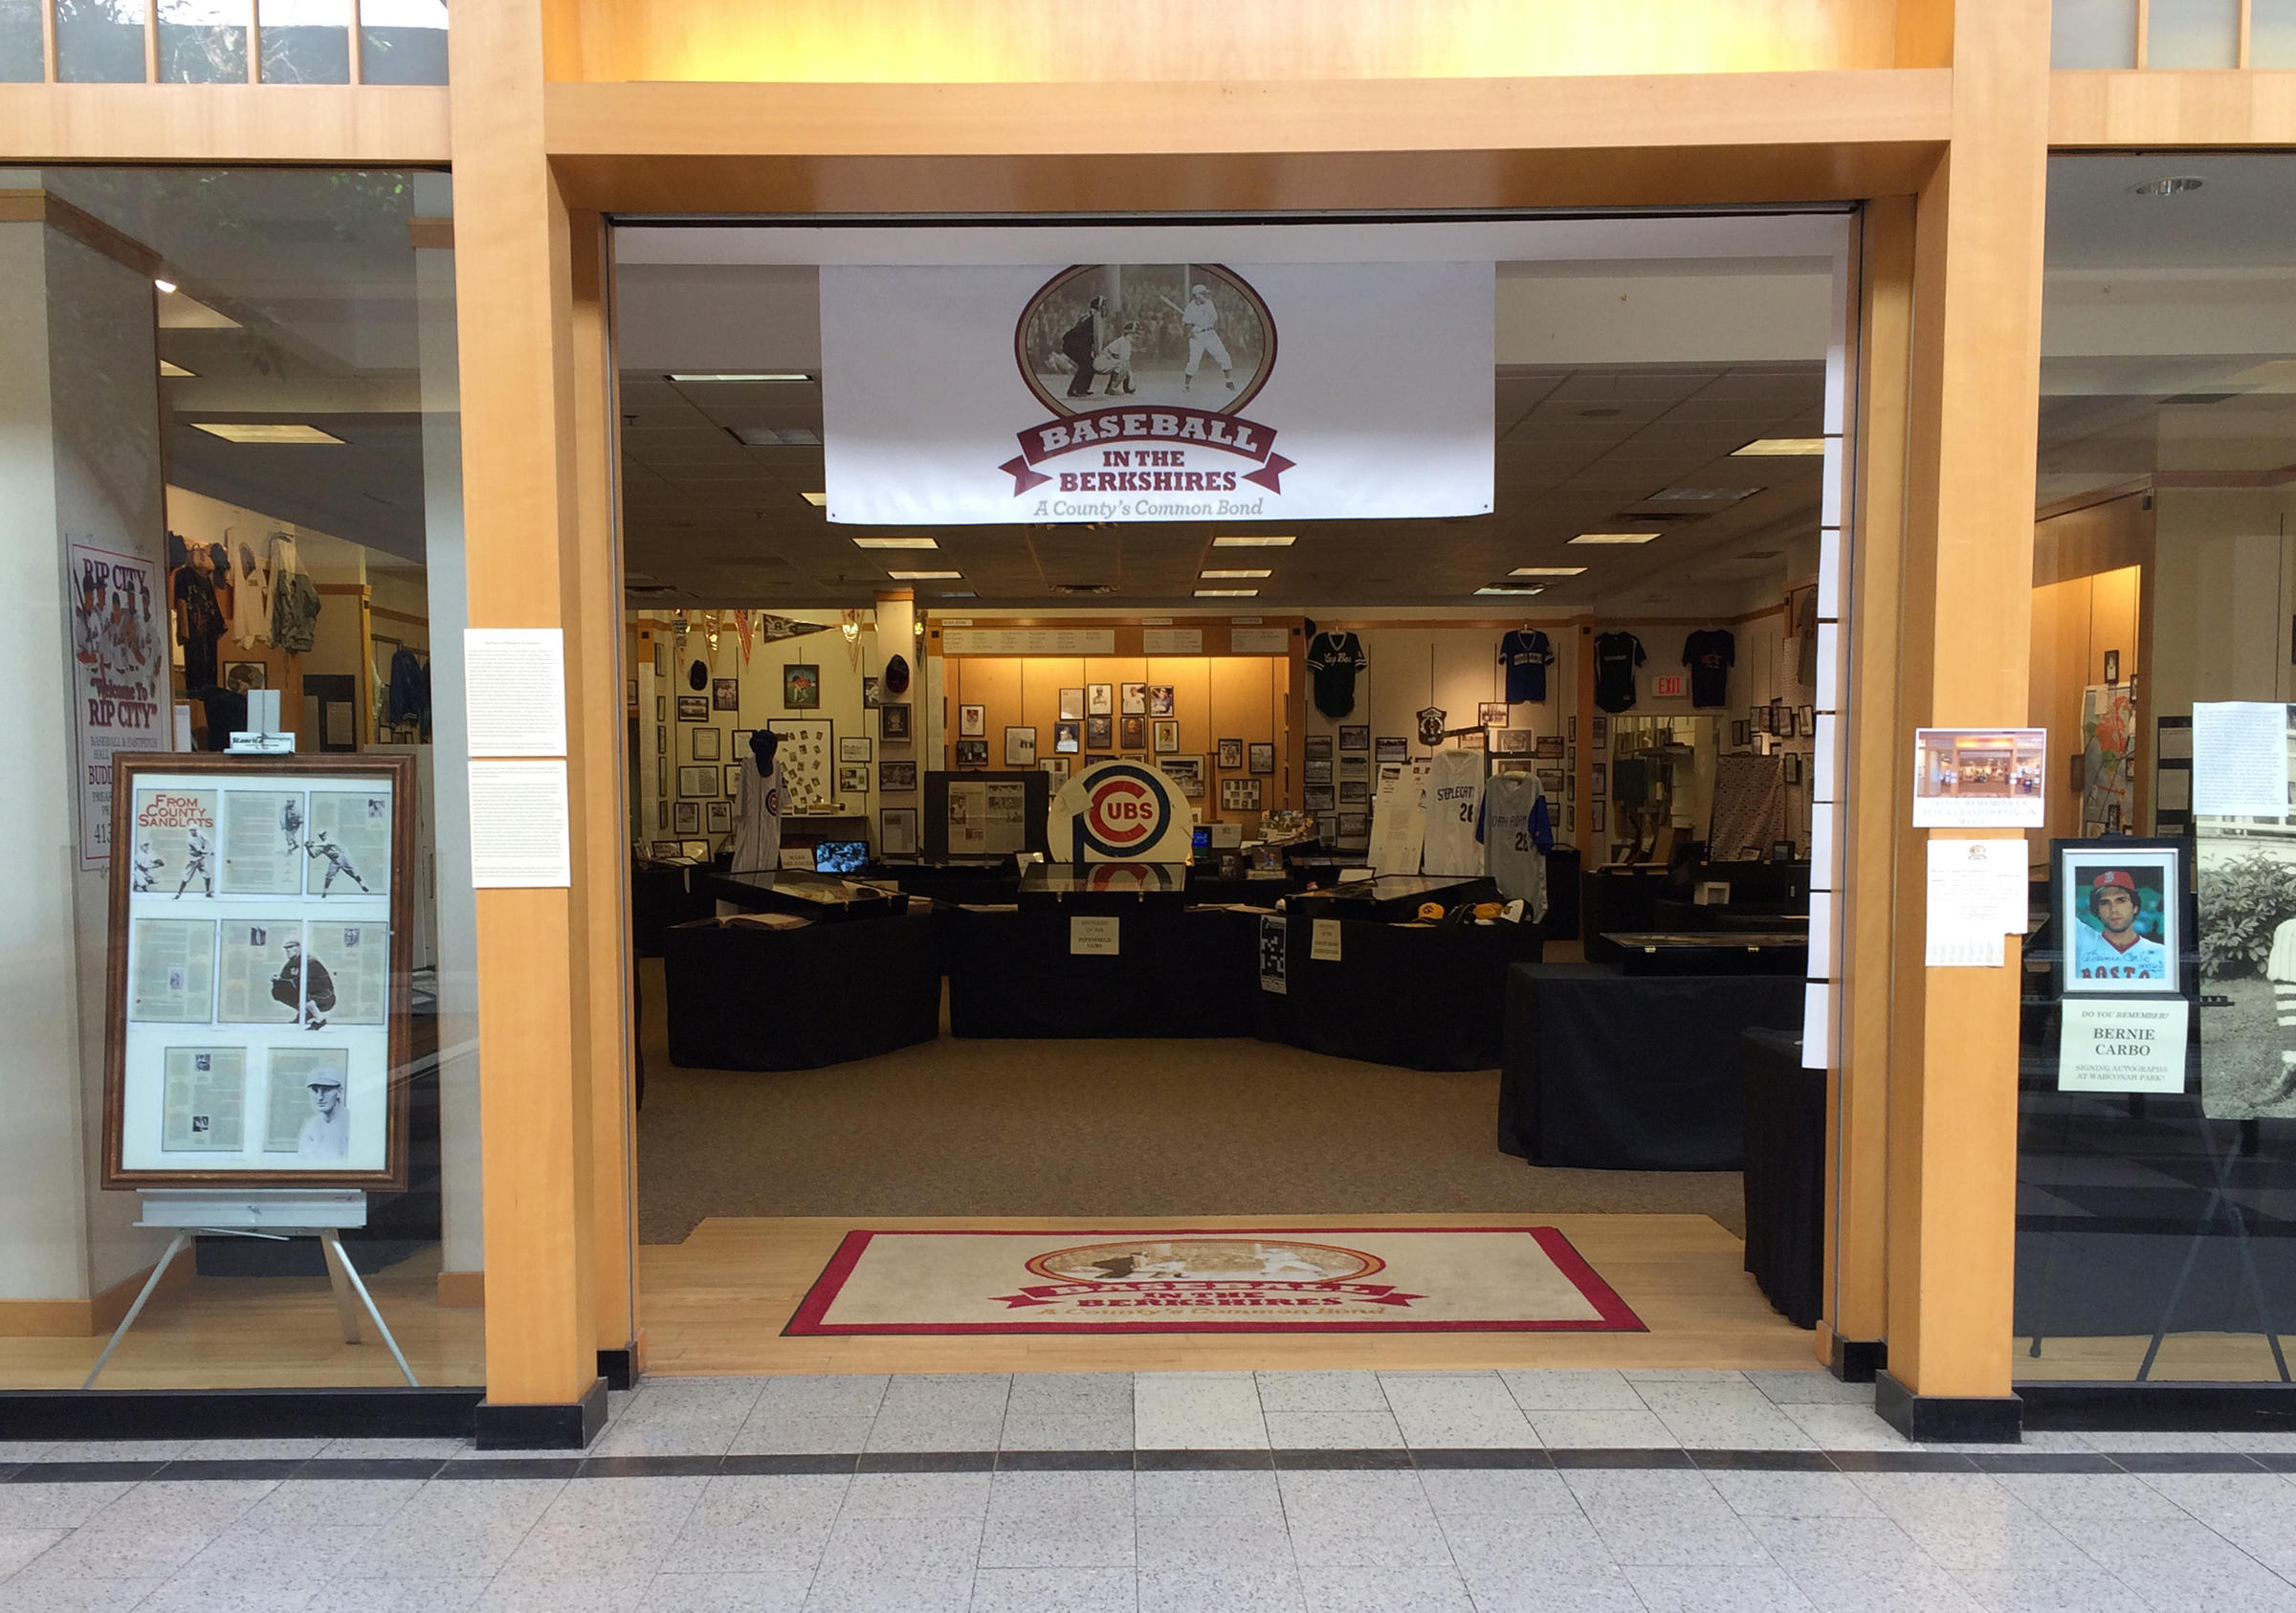 With more empty storefronts than full ones, the 30-year-old Berkshire Mall in Lanesborough, Massachusetts, has seen better days. But near Spencer Gifts and a now-shuttered Hollister, something rather unexpected is alive and well: baseball.